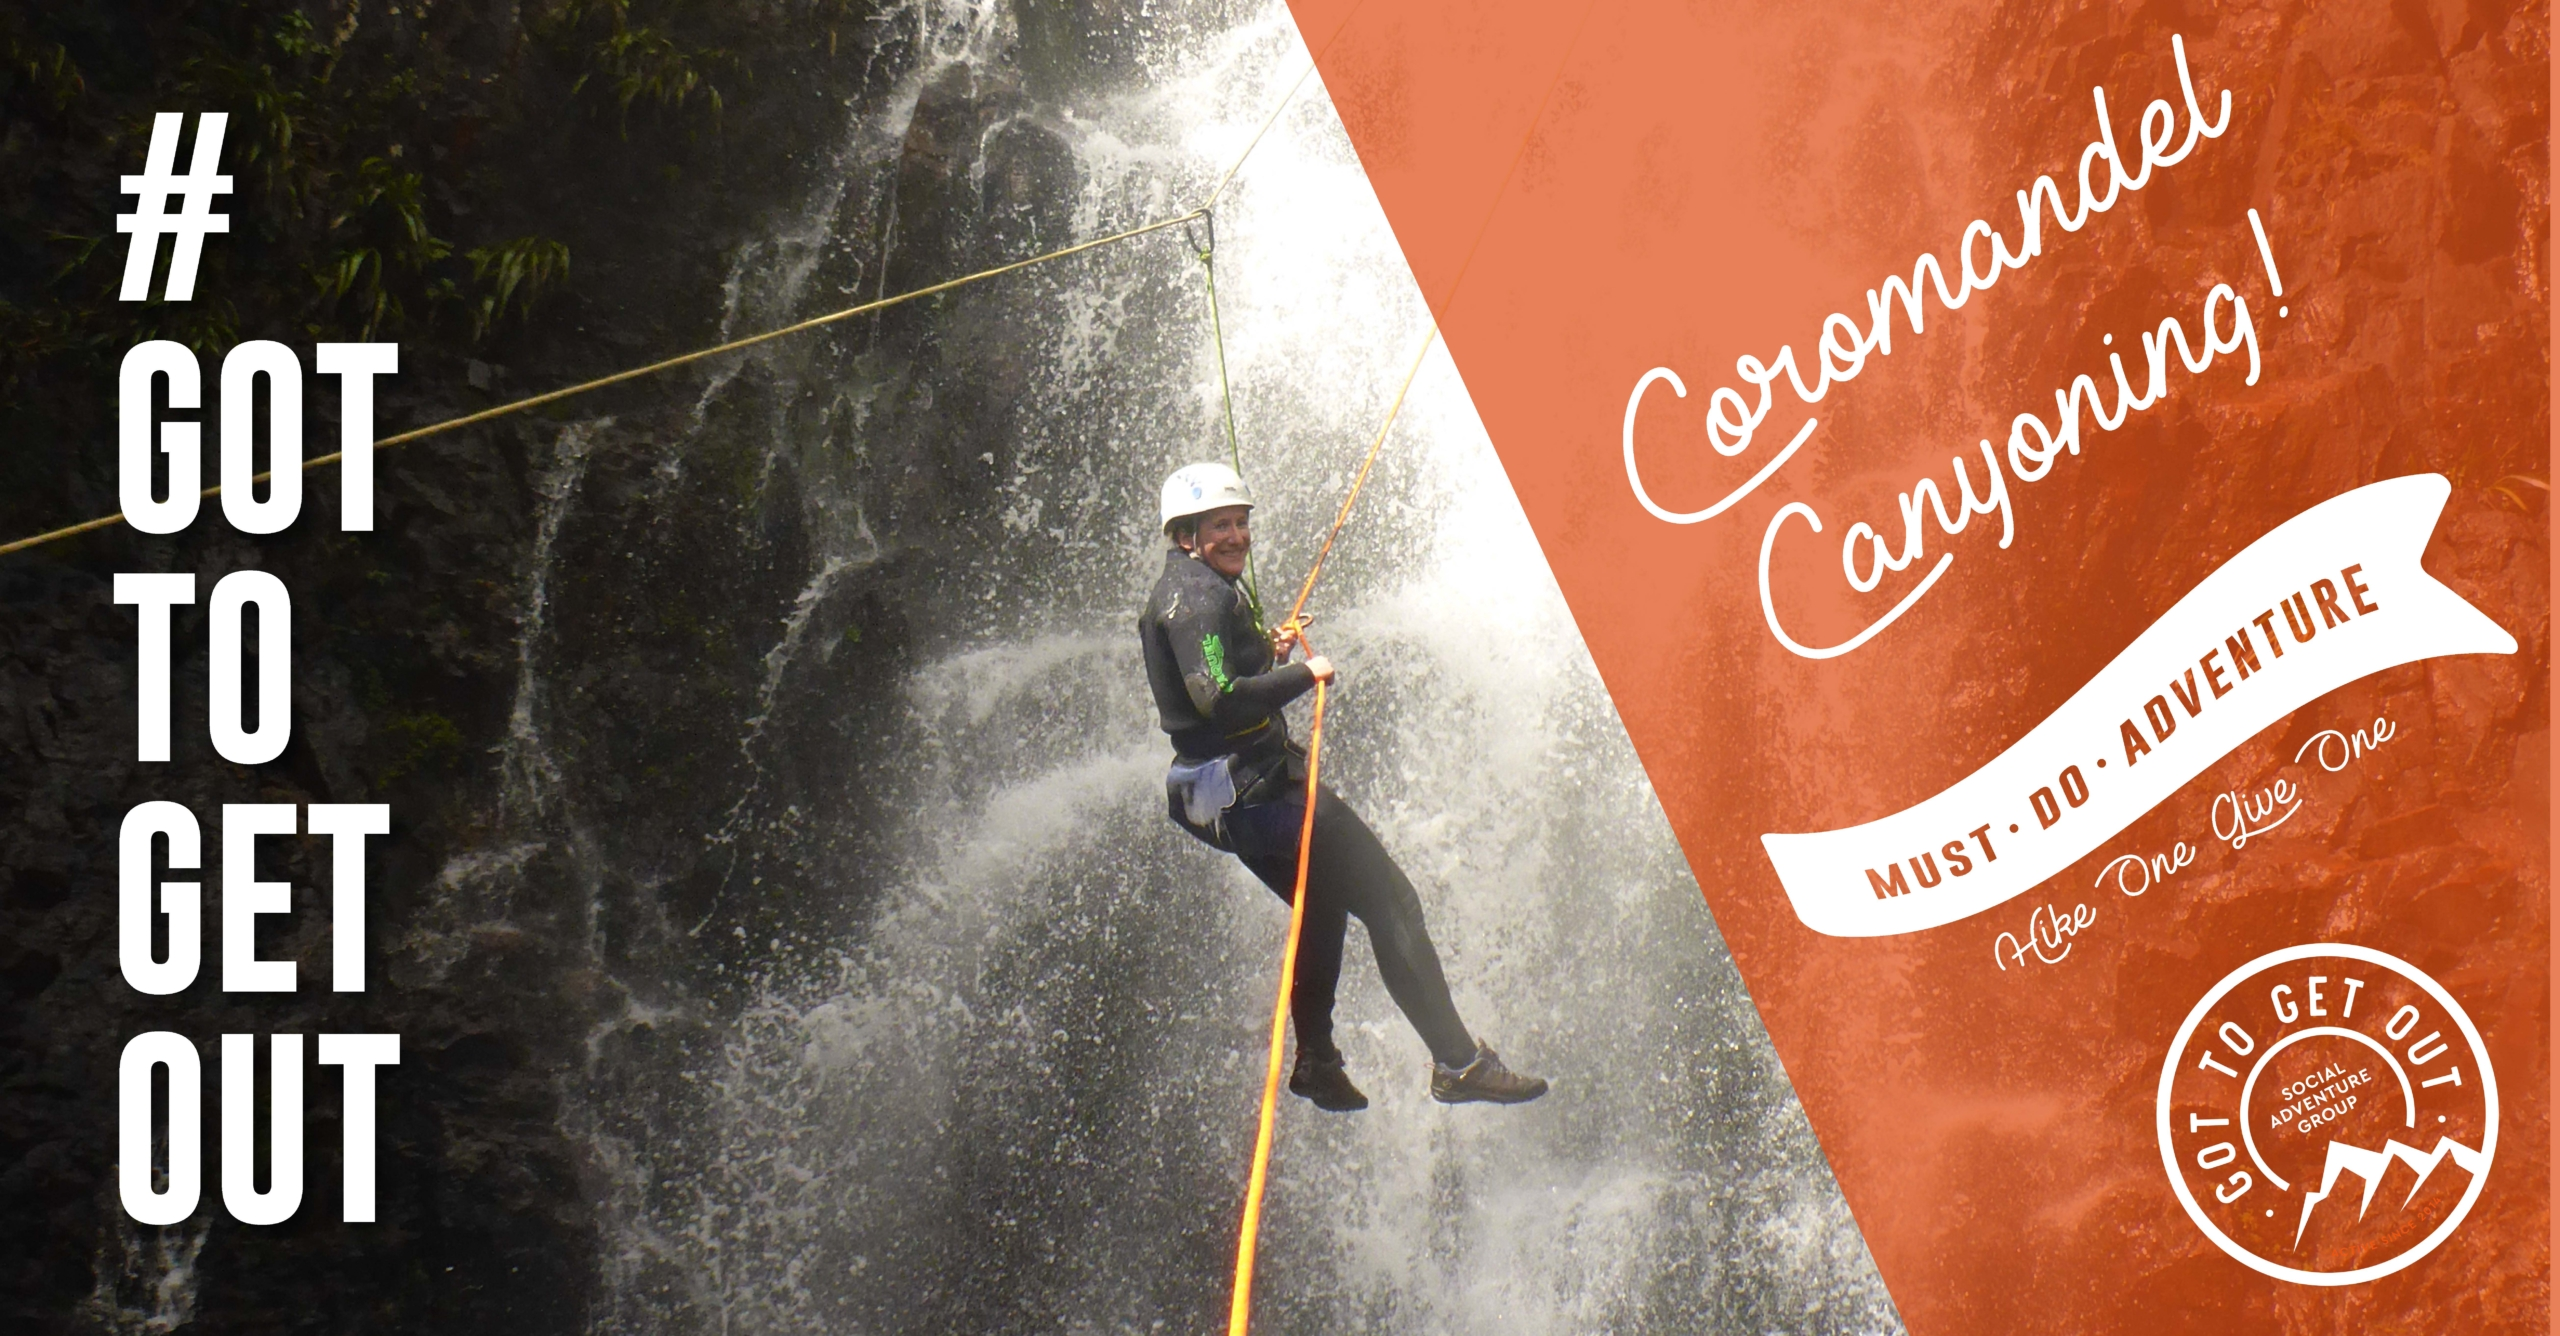 must do adventure coromandel canyoning nz